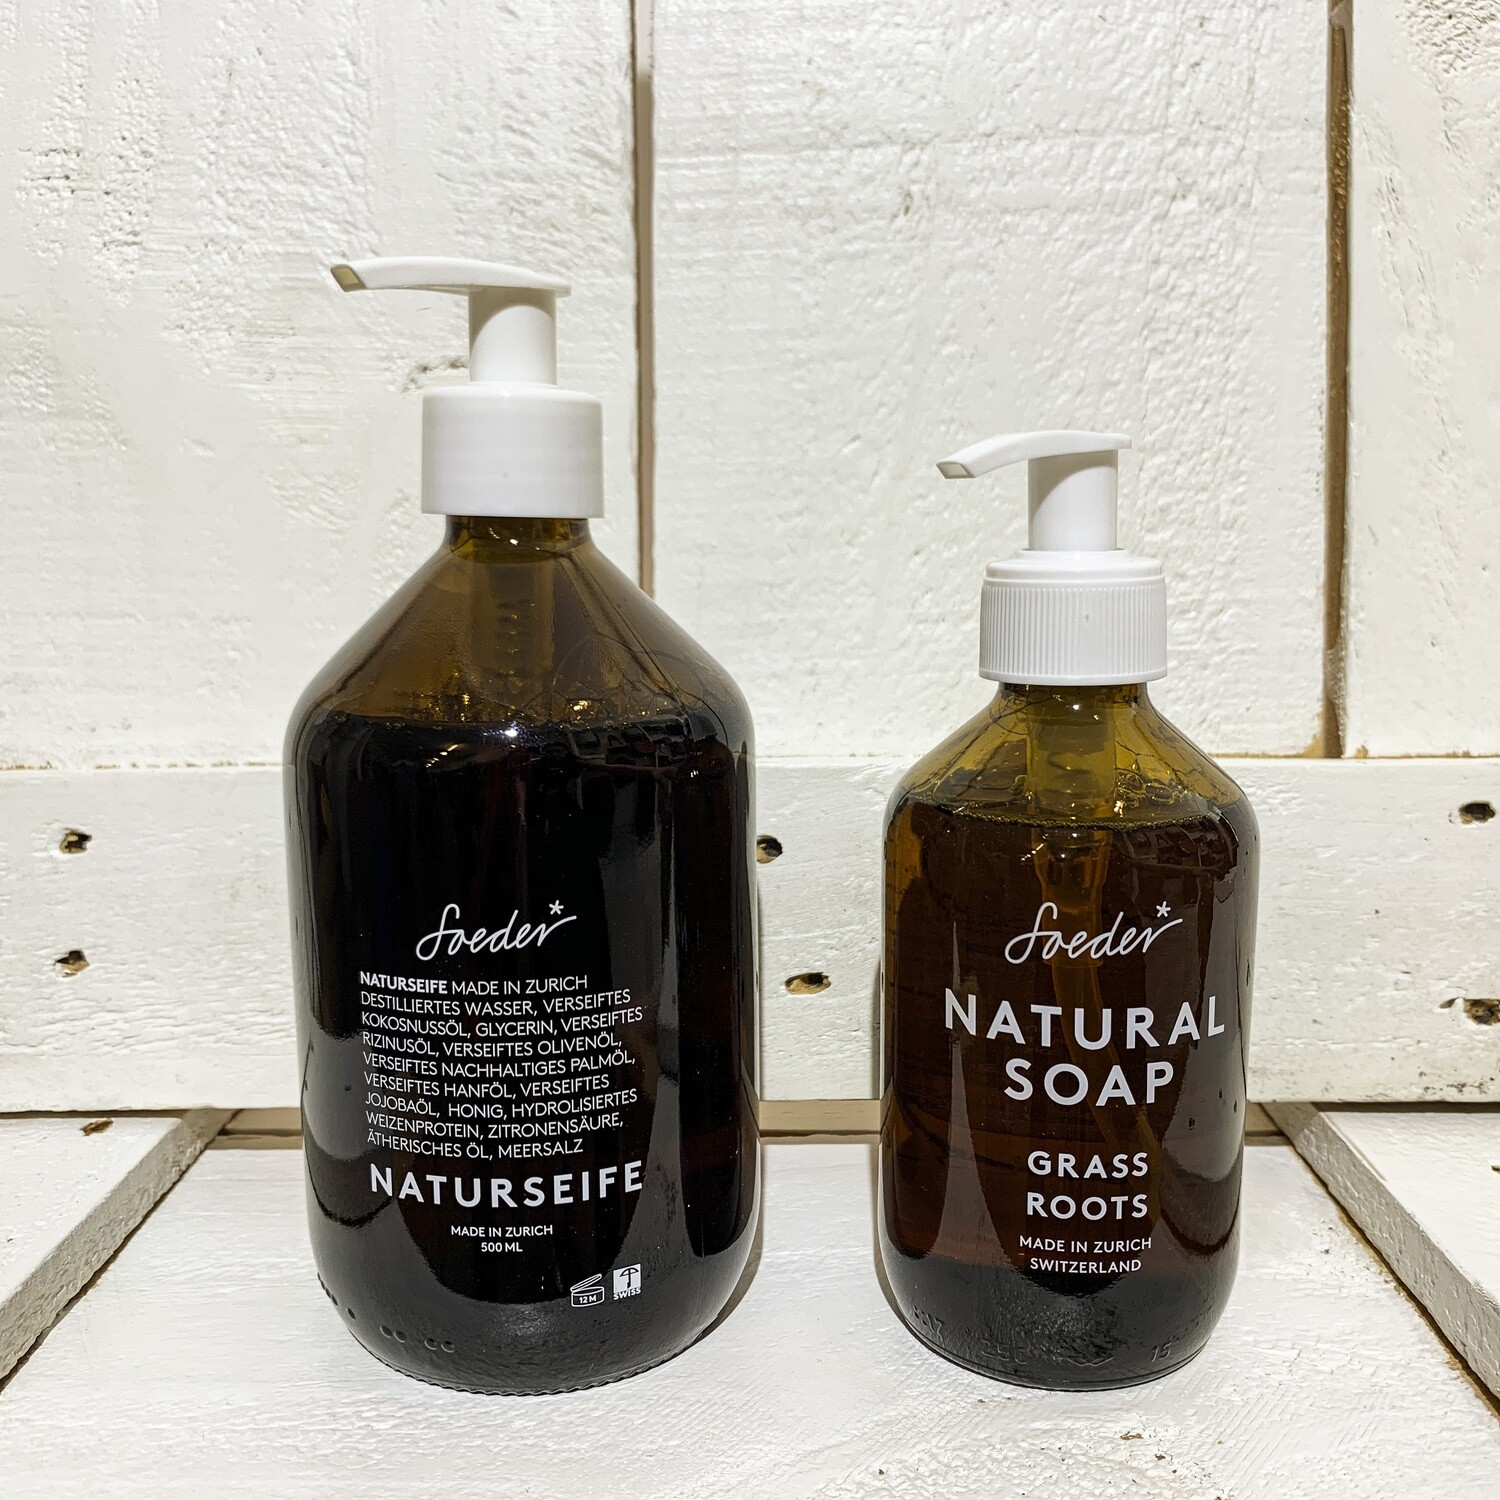 Soeder – Naturseife Grass Roots